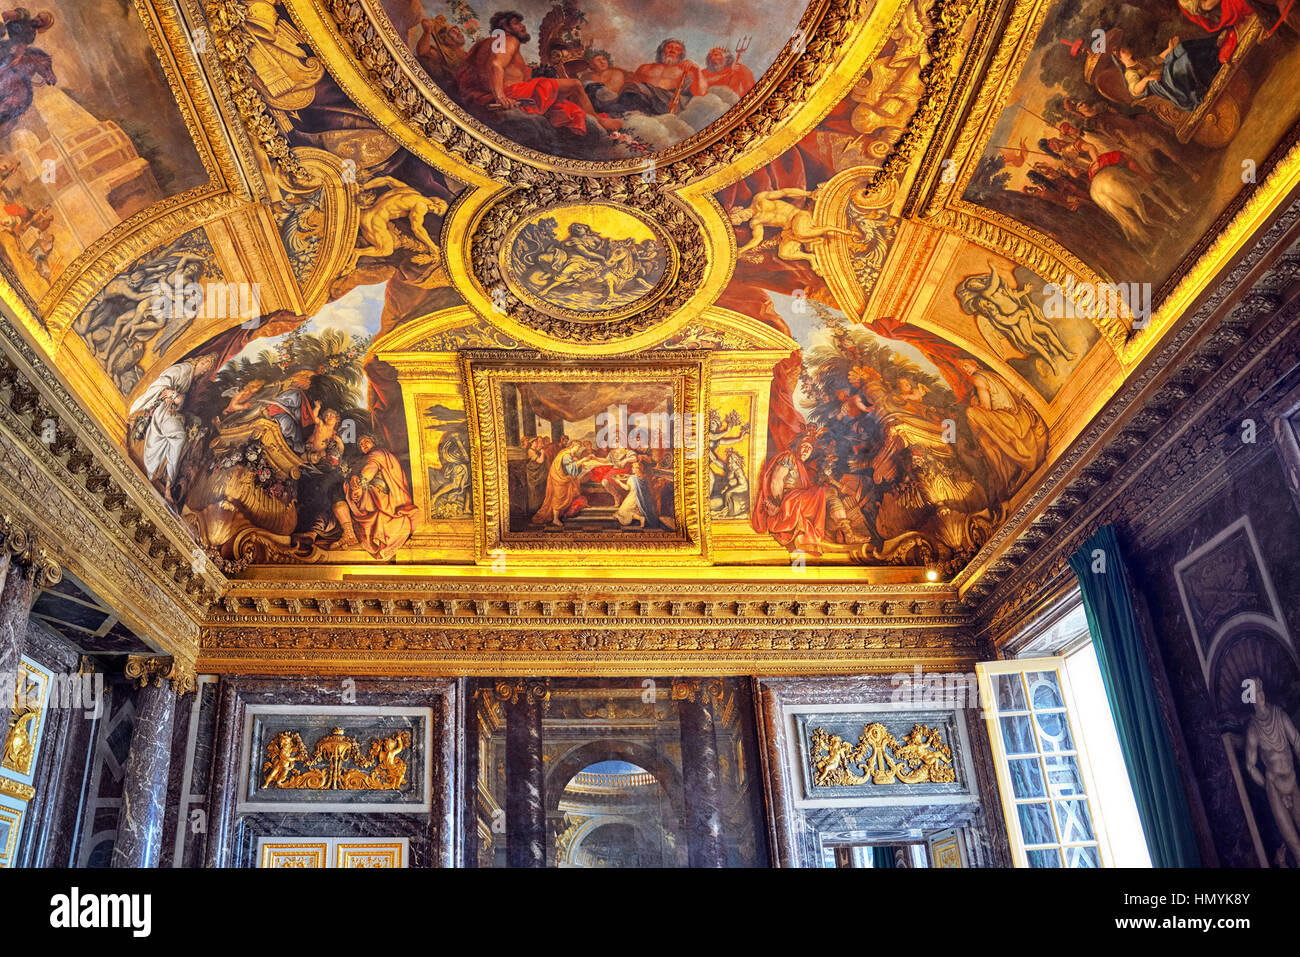 Room war palace versailles versailles stockfotos room for Salon versailles 2016